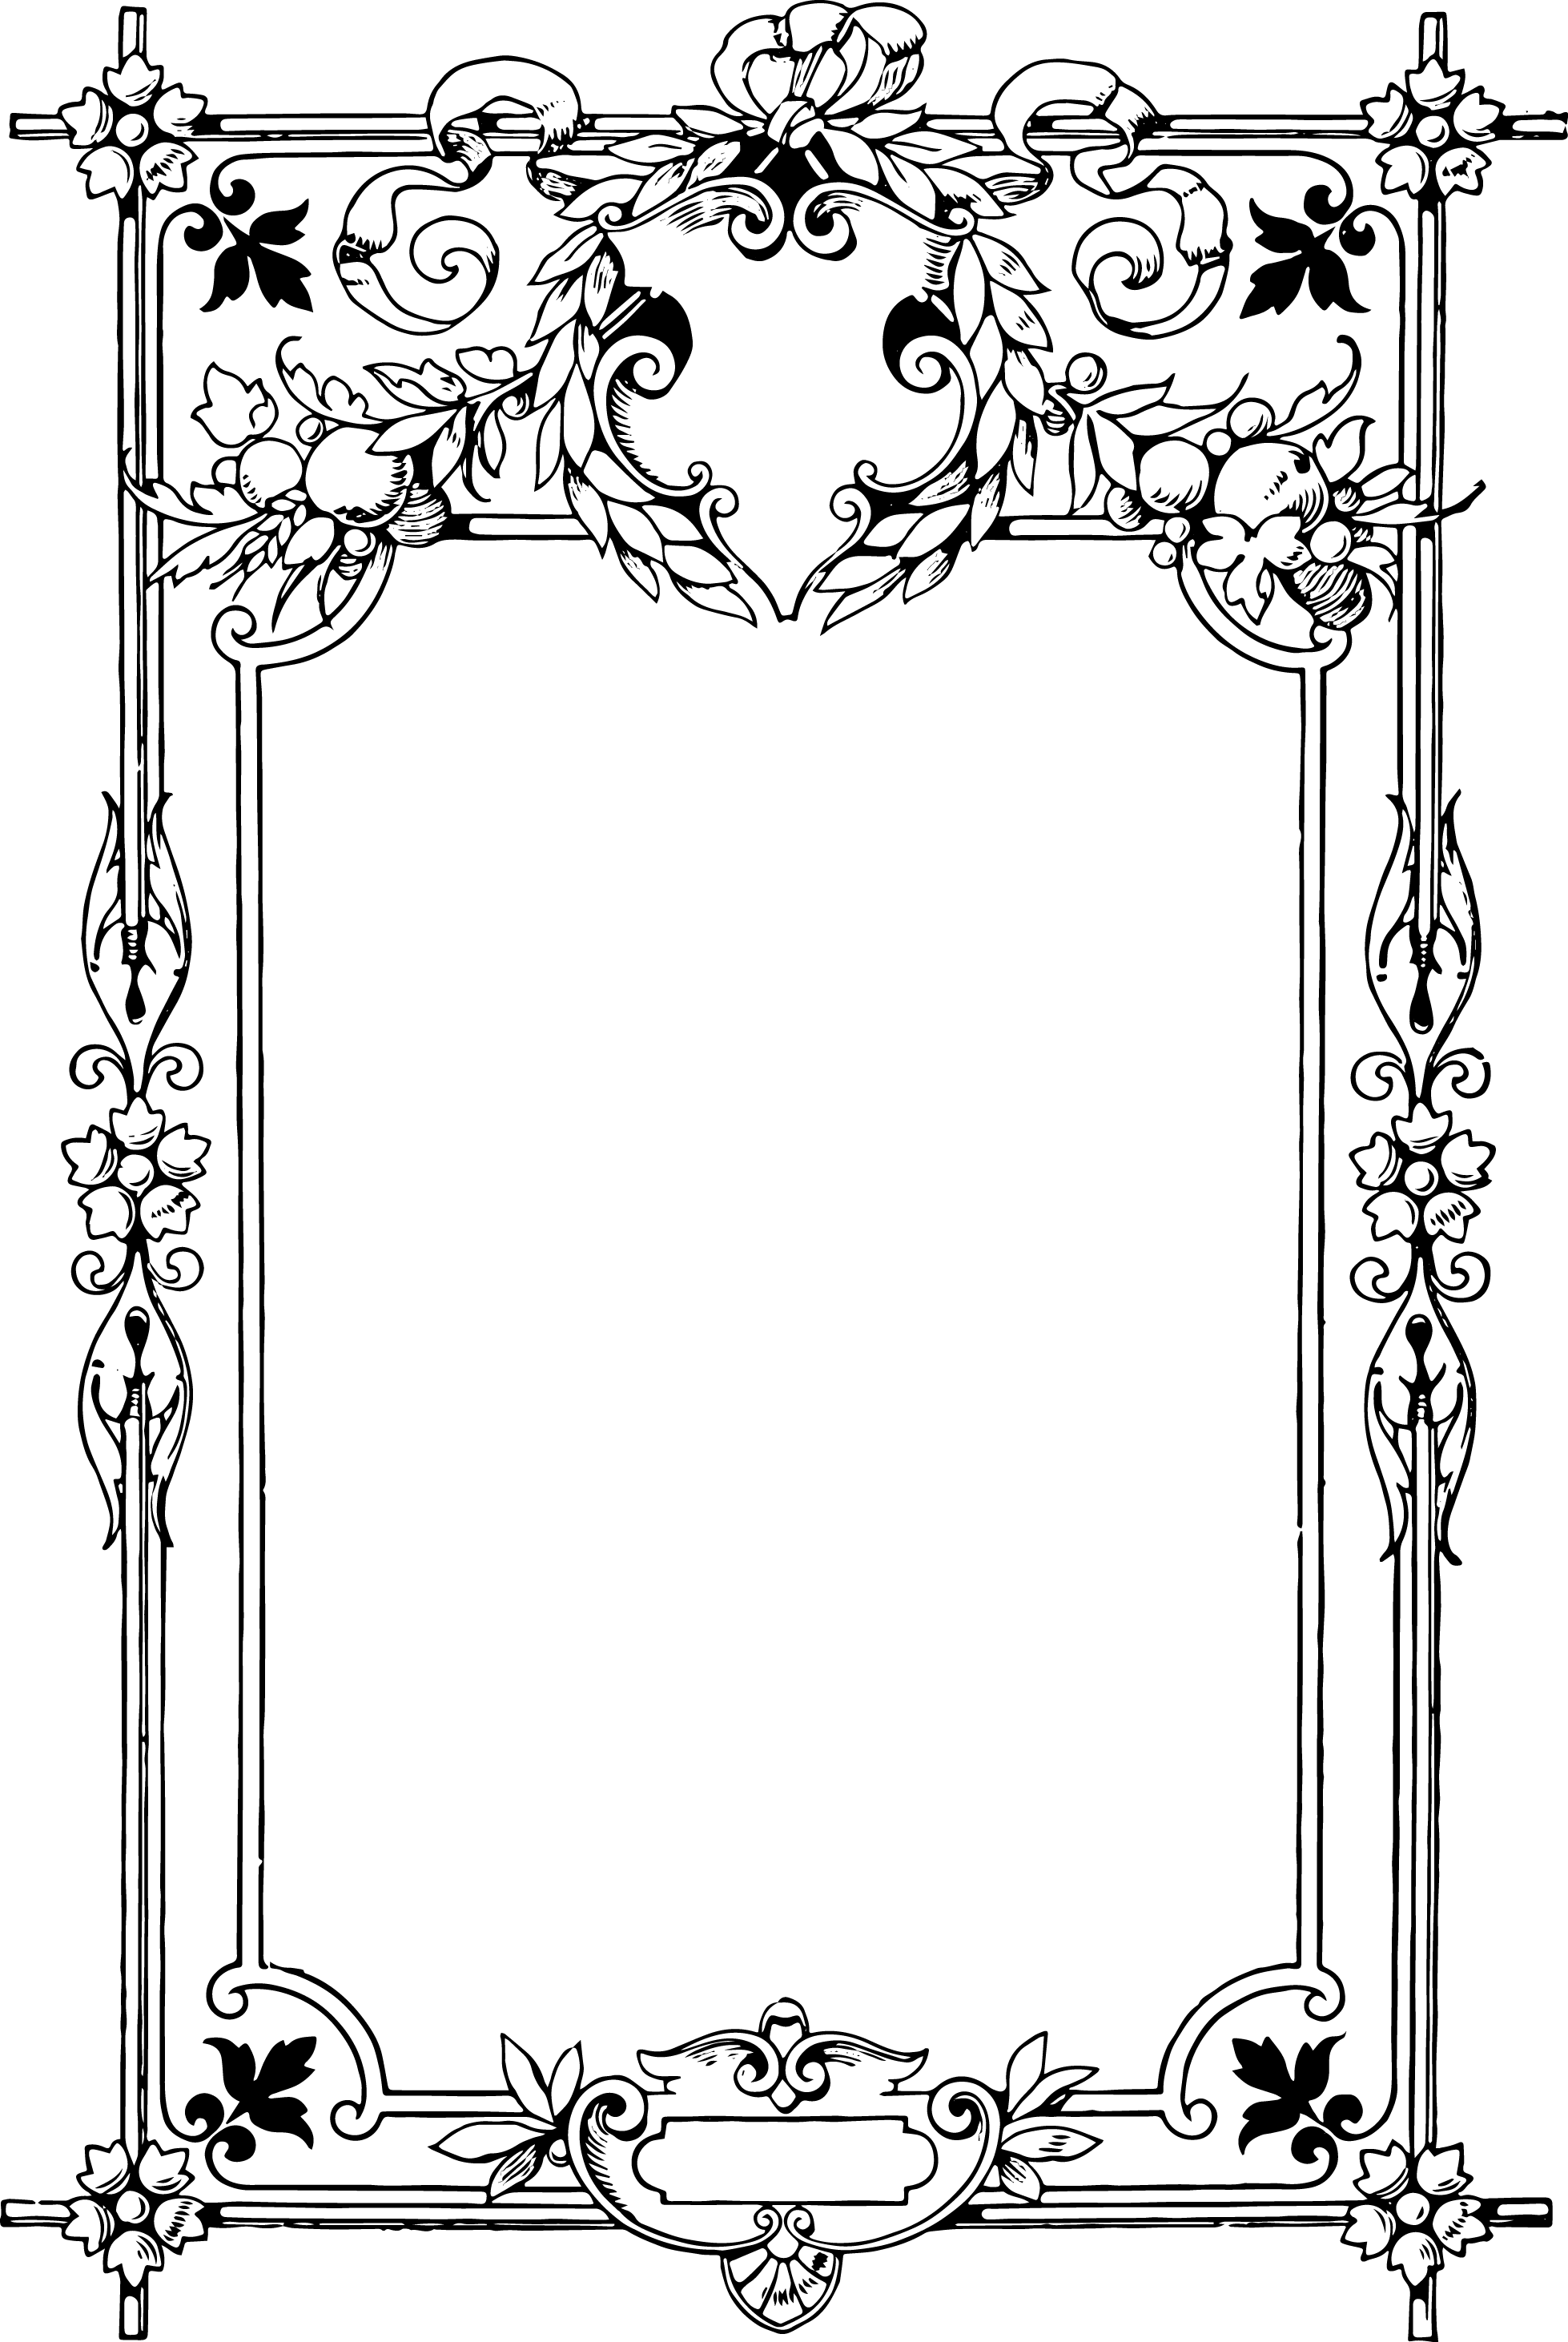 Gorgeous Clip Art Border Frame | Papercrafts | Pinterest | Pawprint ...